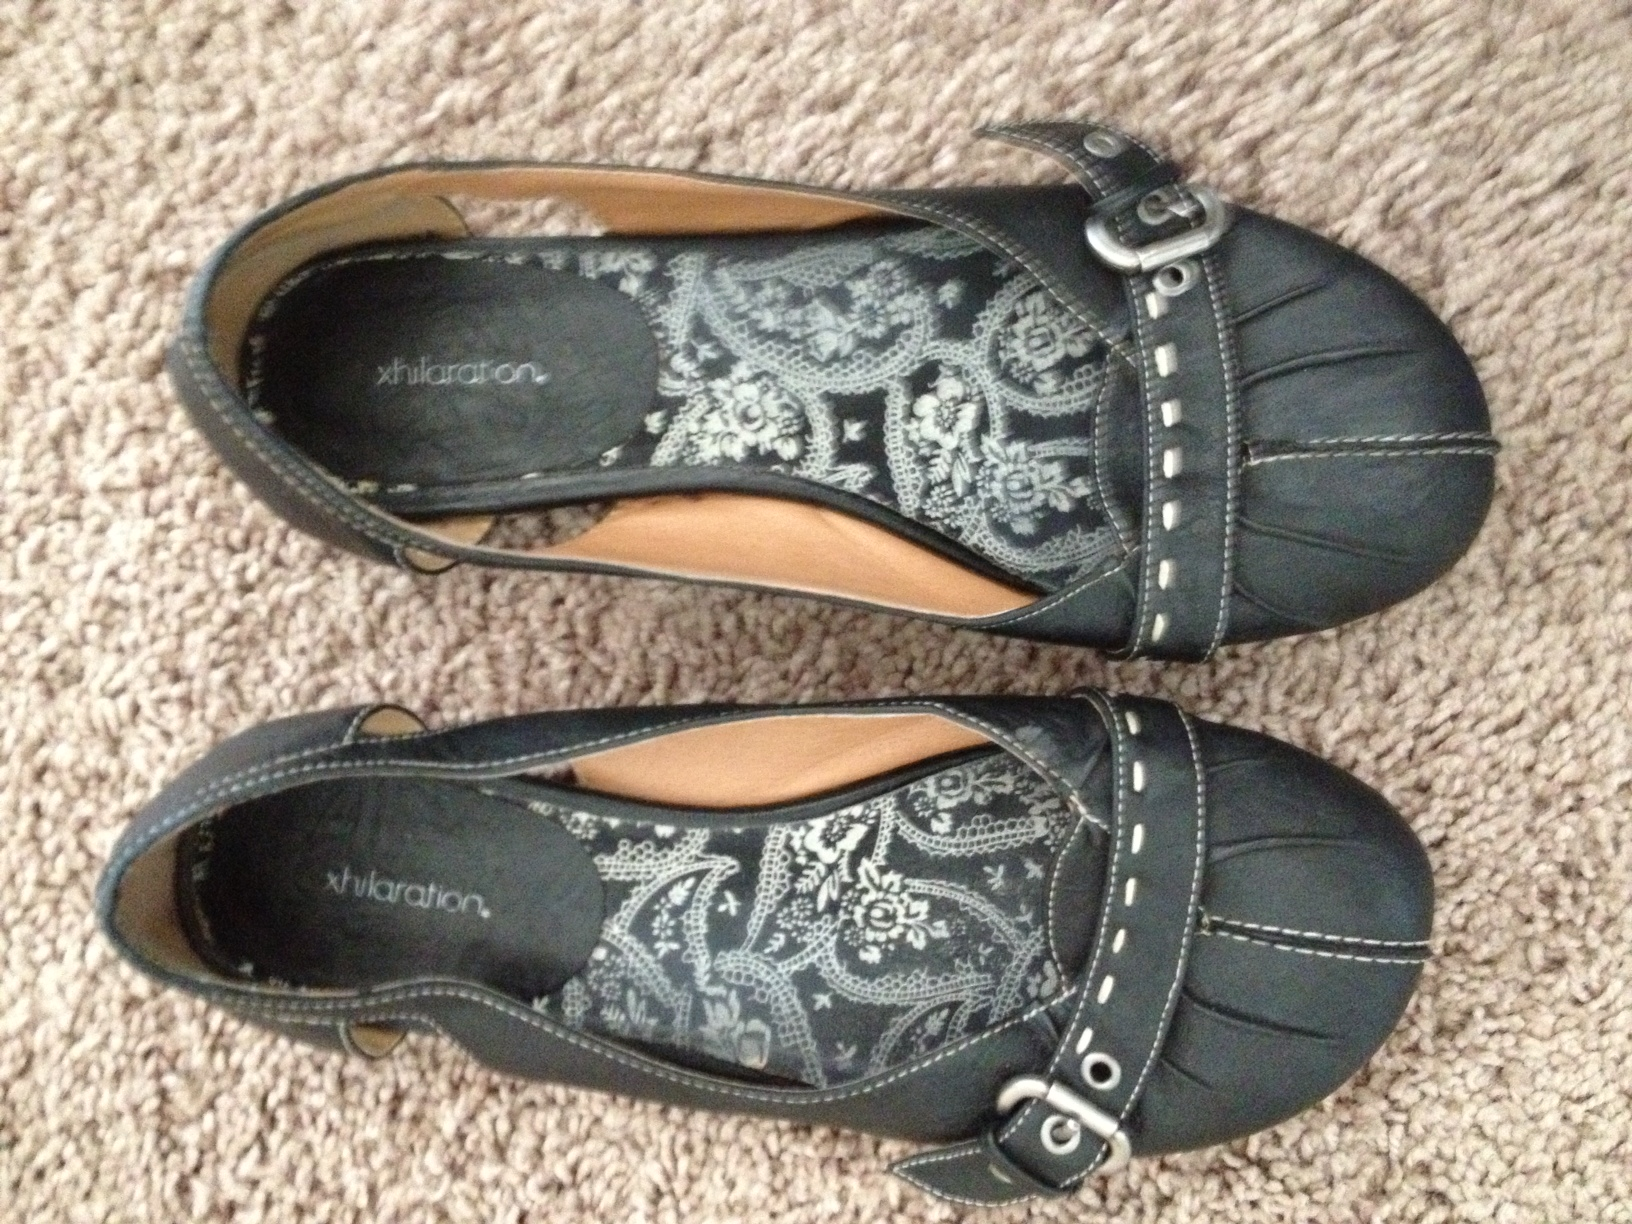 I got these shoes. Funny story-- I had the exact same pair when I lived in Dallas. They were so comfy, I wore them nonstop for almost 2 years. I wore them until there were holes in the soles and I had to throw them out! These were the same ones in my size, so I went ahead and got them, in case I can get another year or two of use from them :) Would've been $2